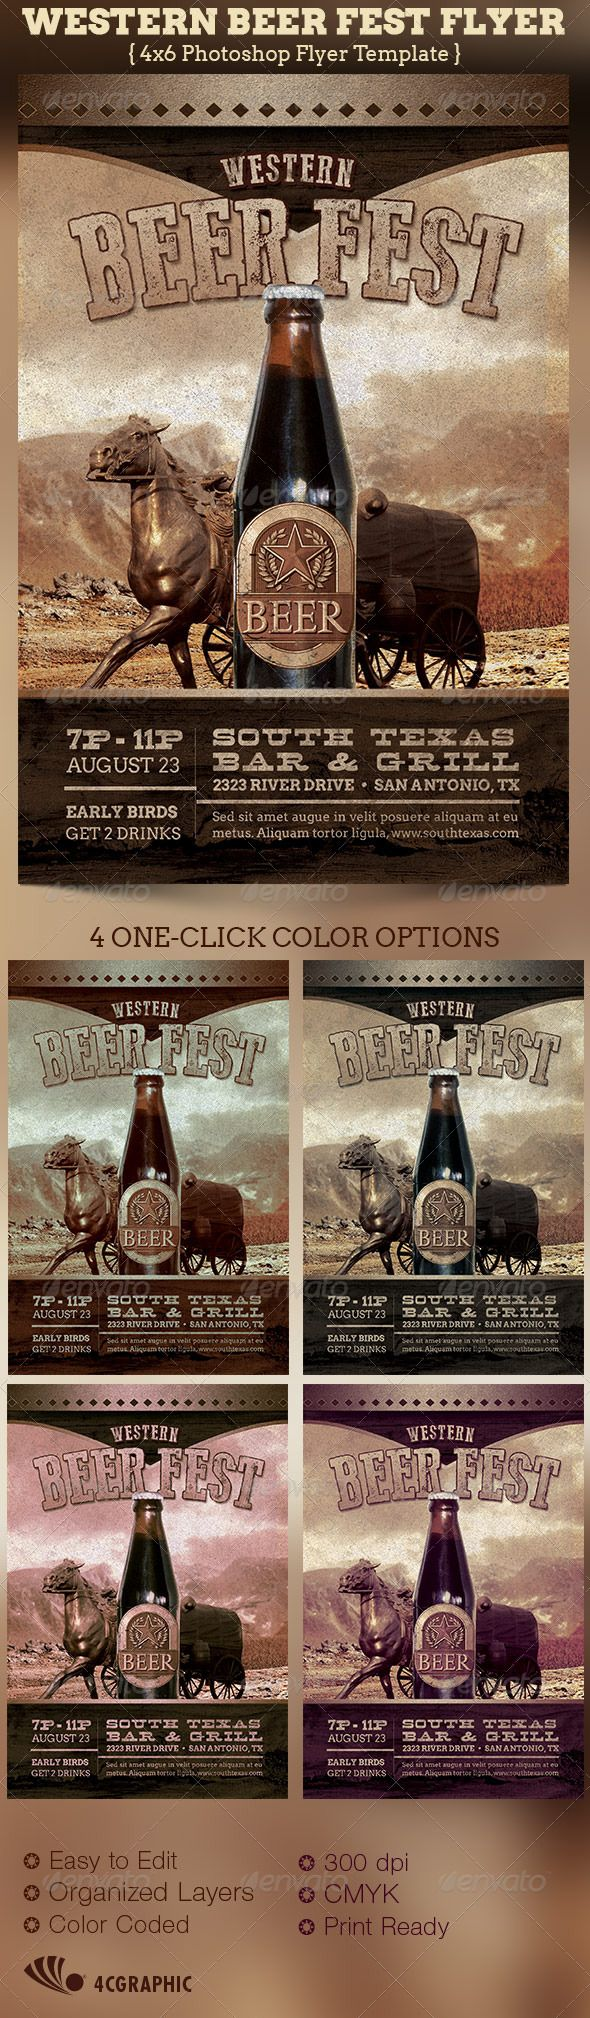 The Western Beer Fest Flyer Template - $6.00